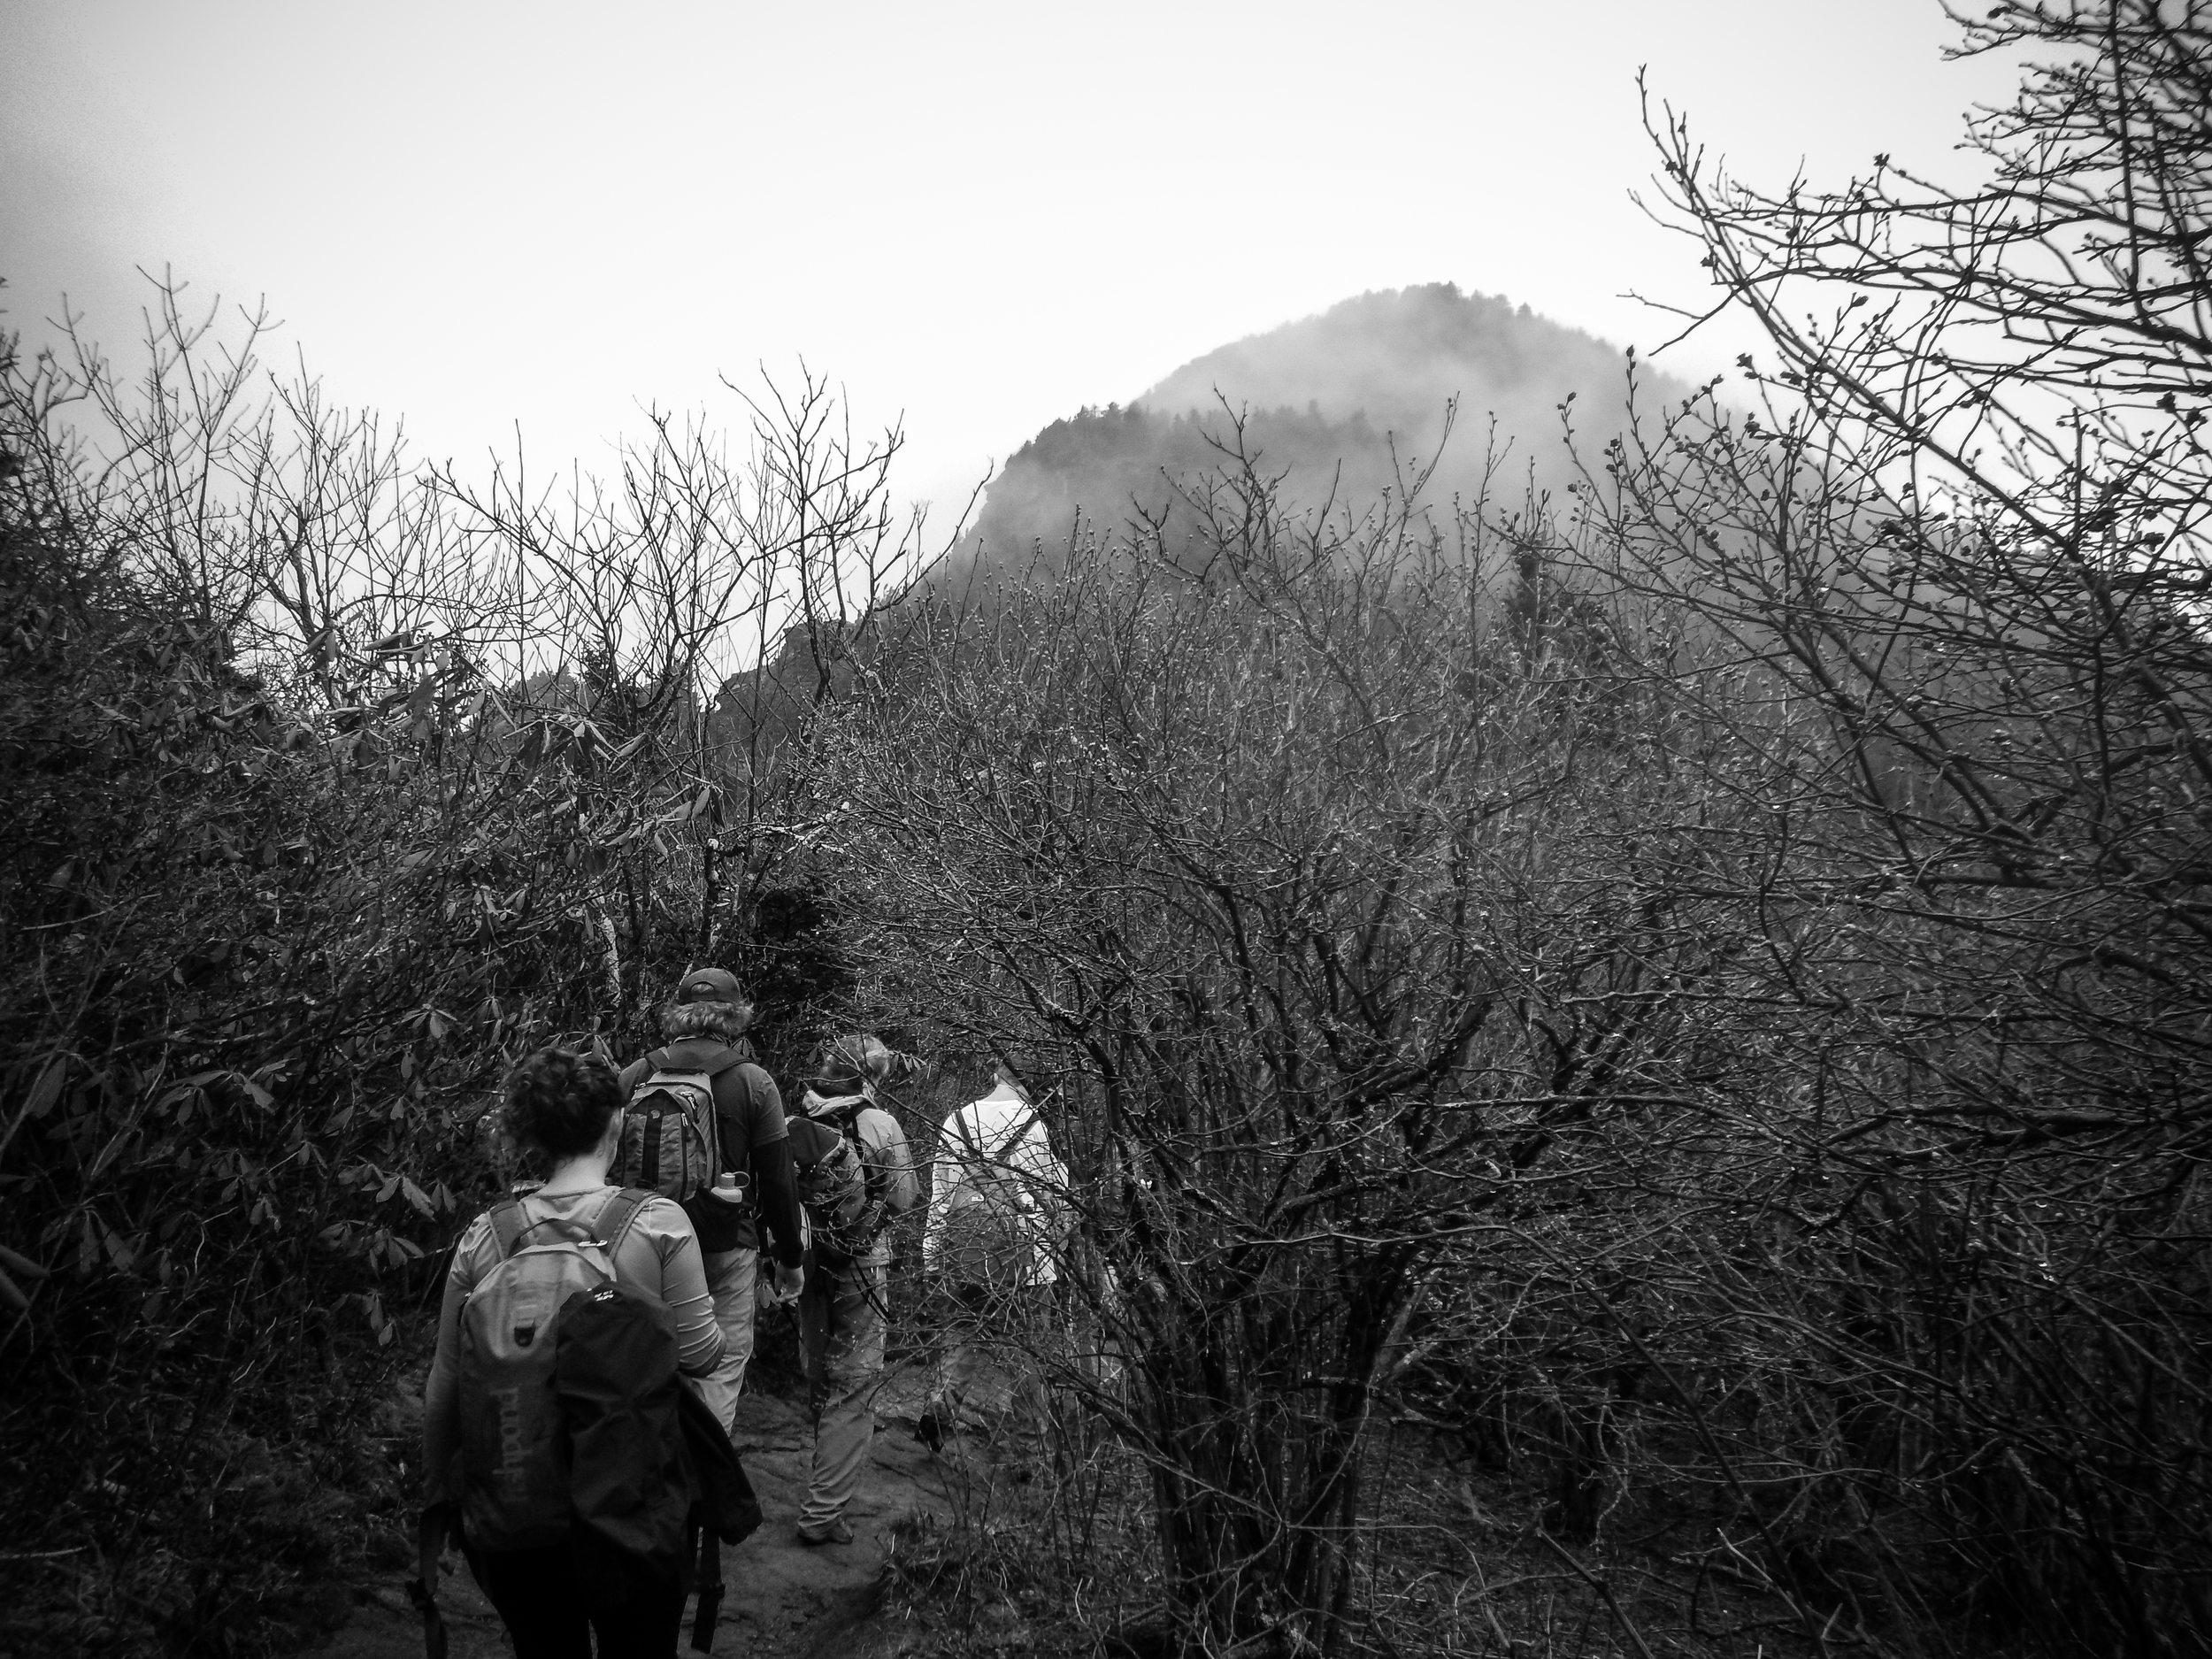 The group approaches a cloud-cloaked McCrae Peak.